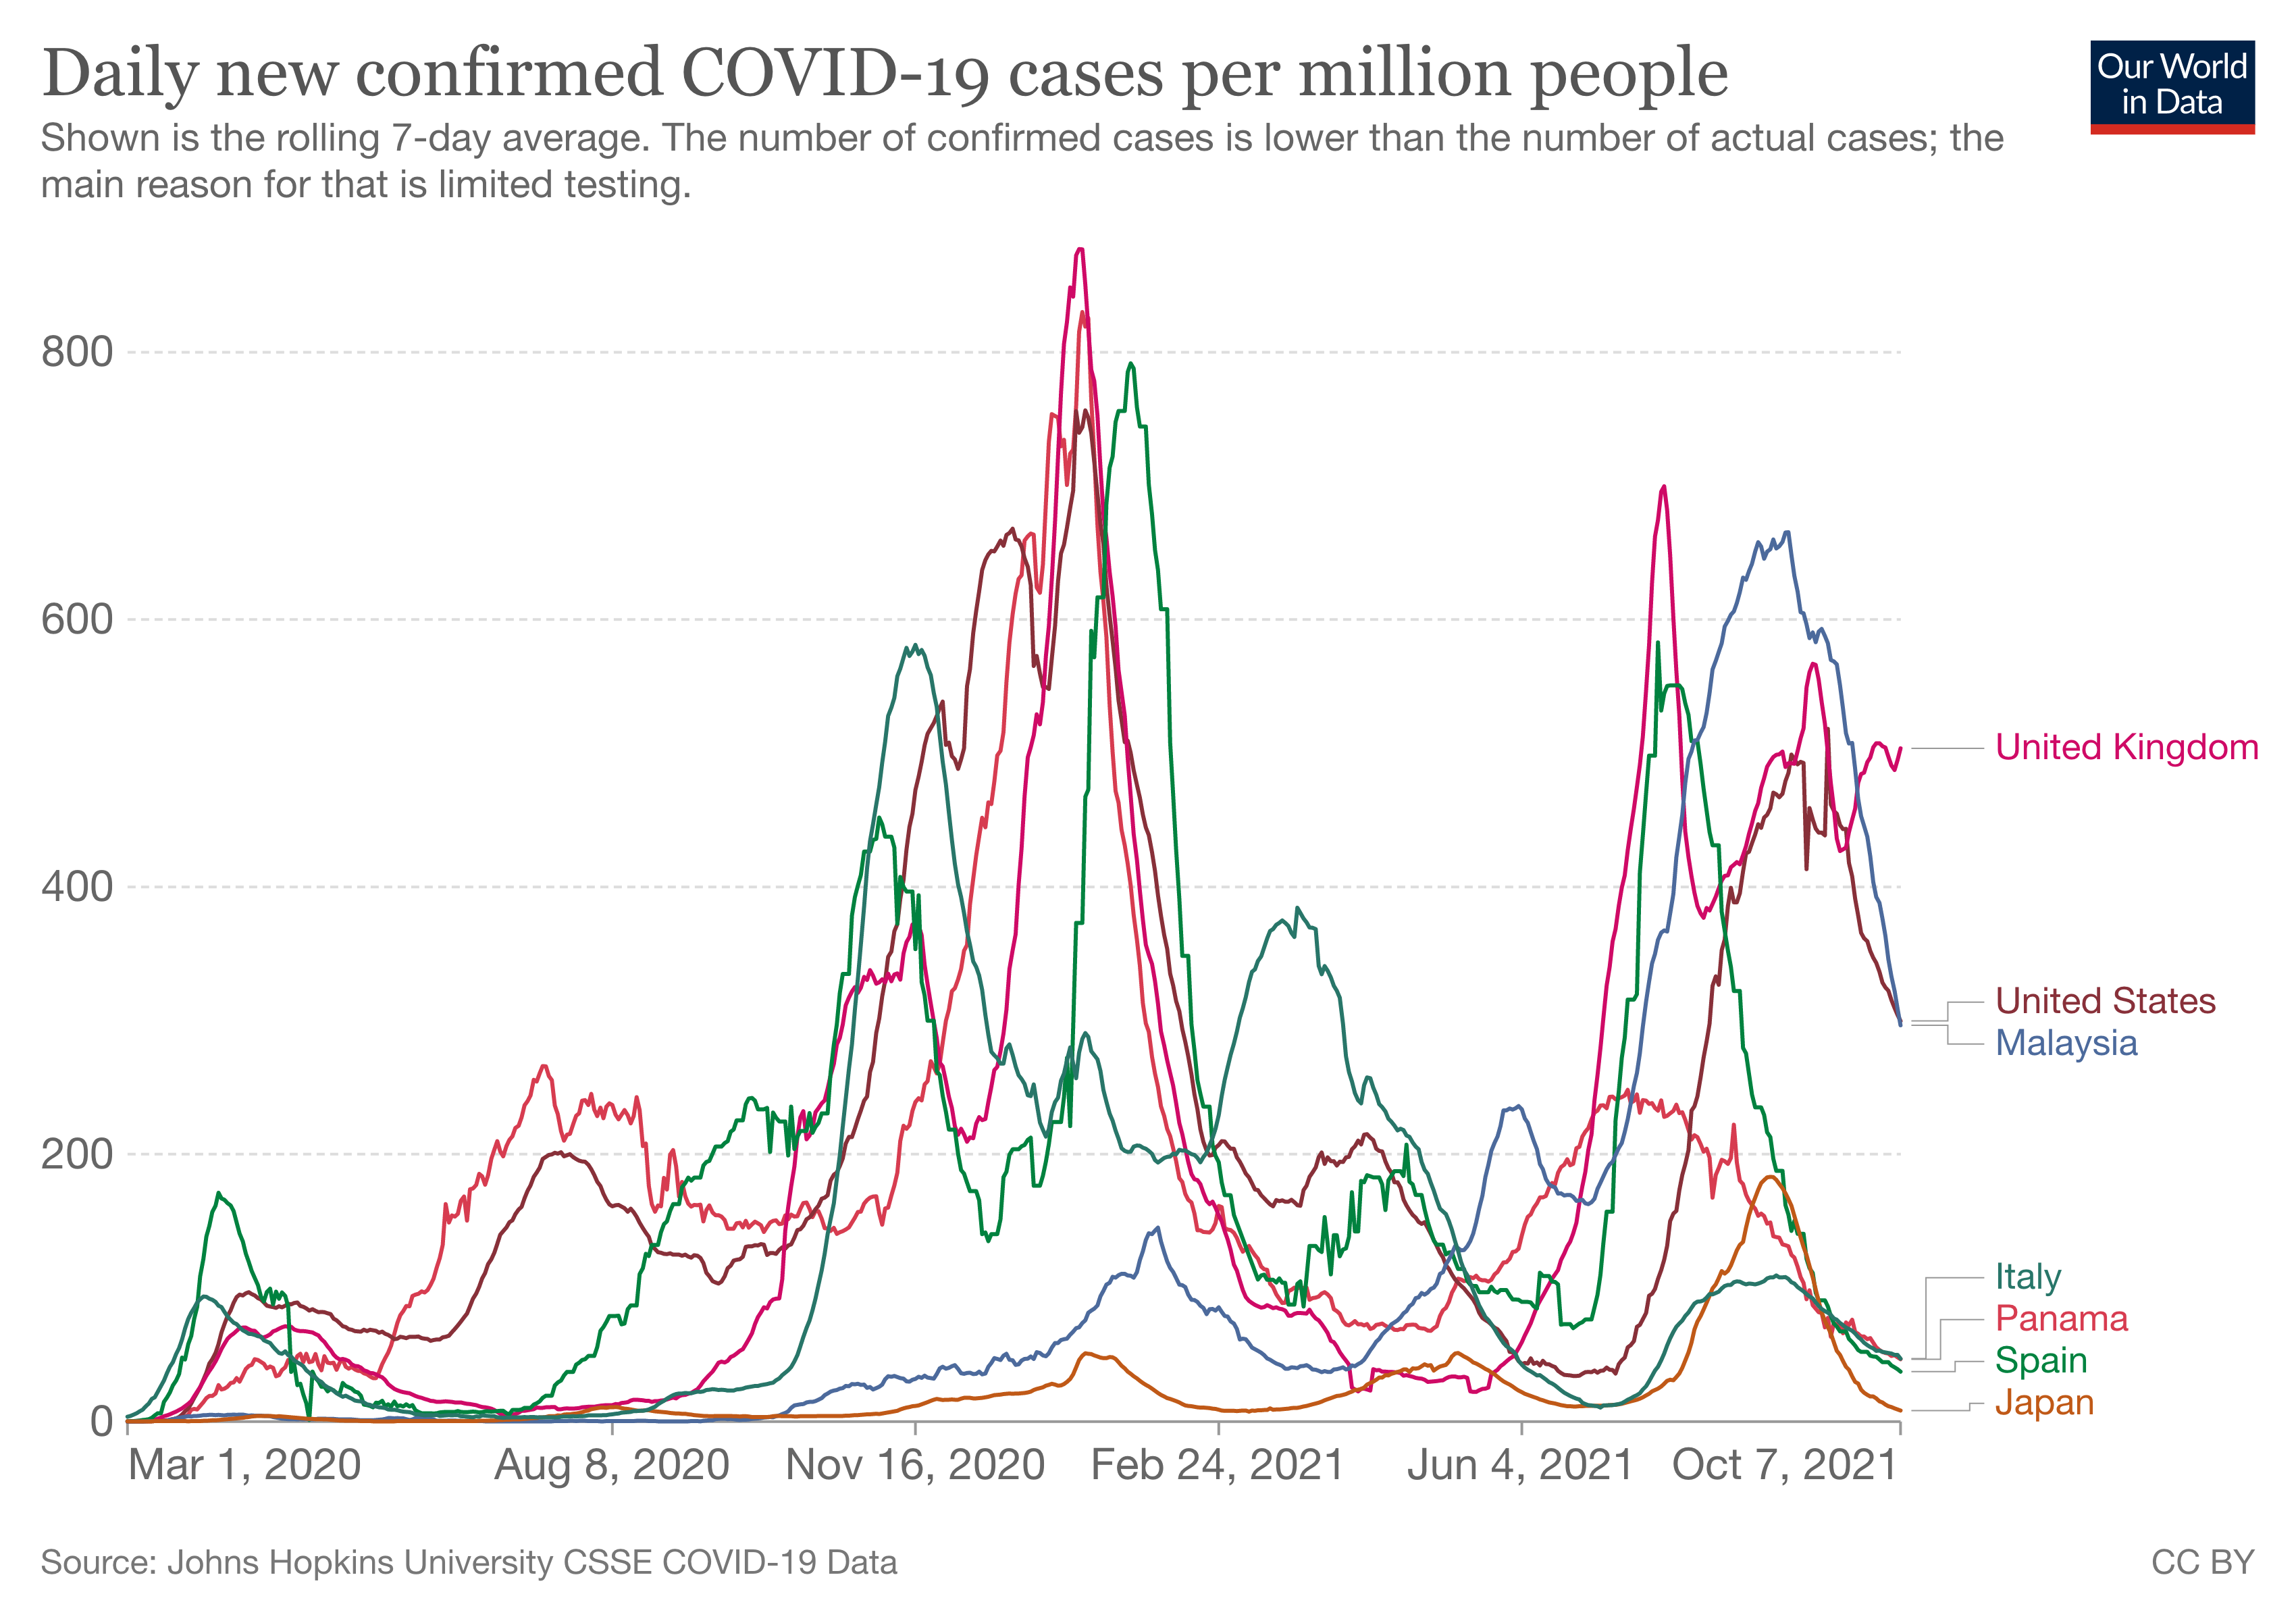 Daily new confirmed COVID-19 cases per million people in selected countries